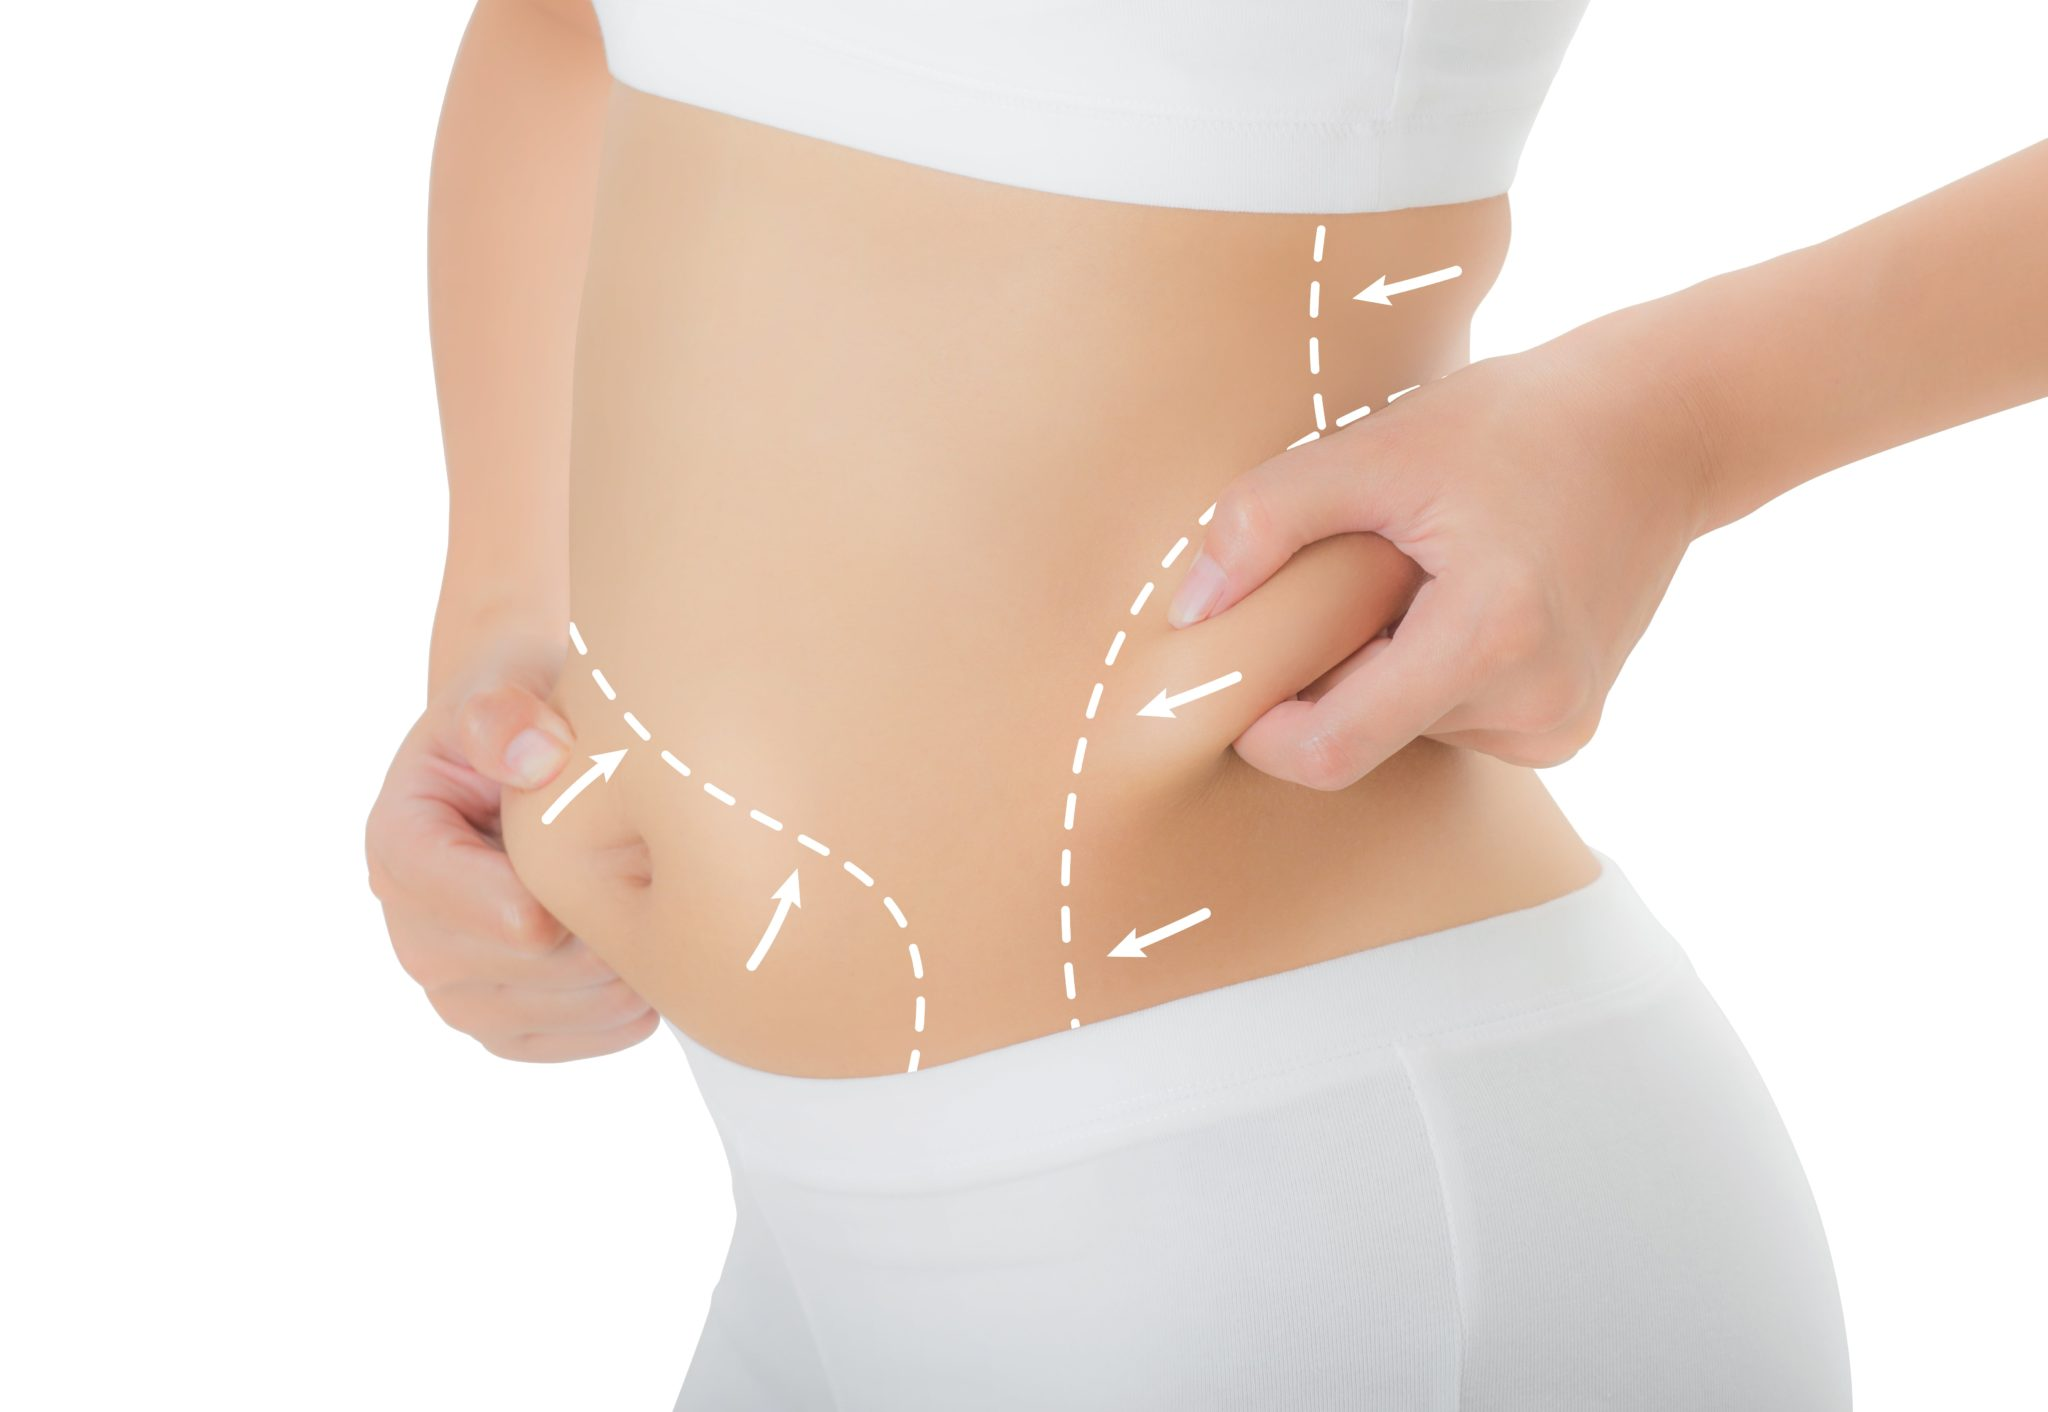 How Zerona Laser Is An Effective Treatment to Get Rid of Excess Fat